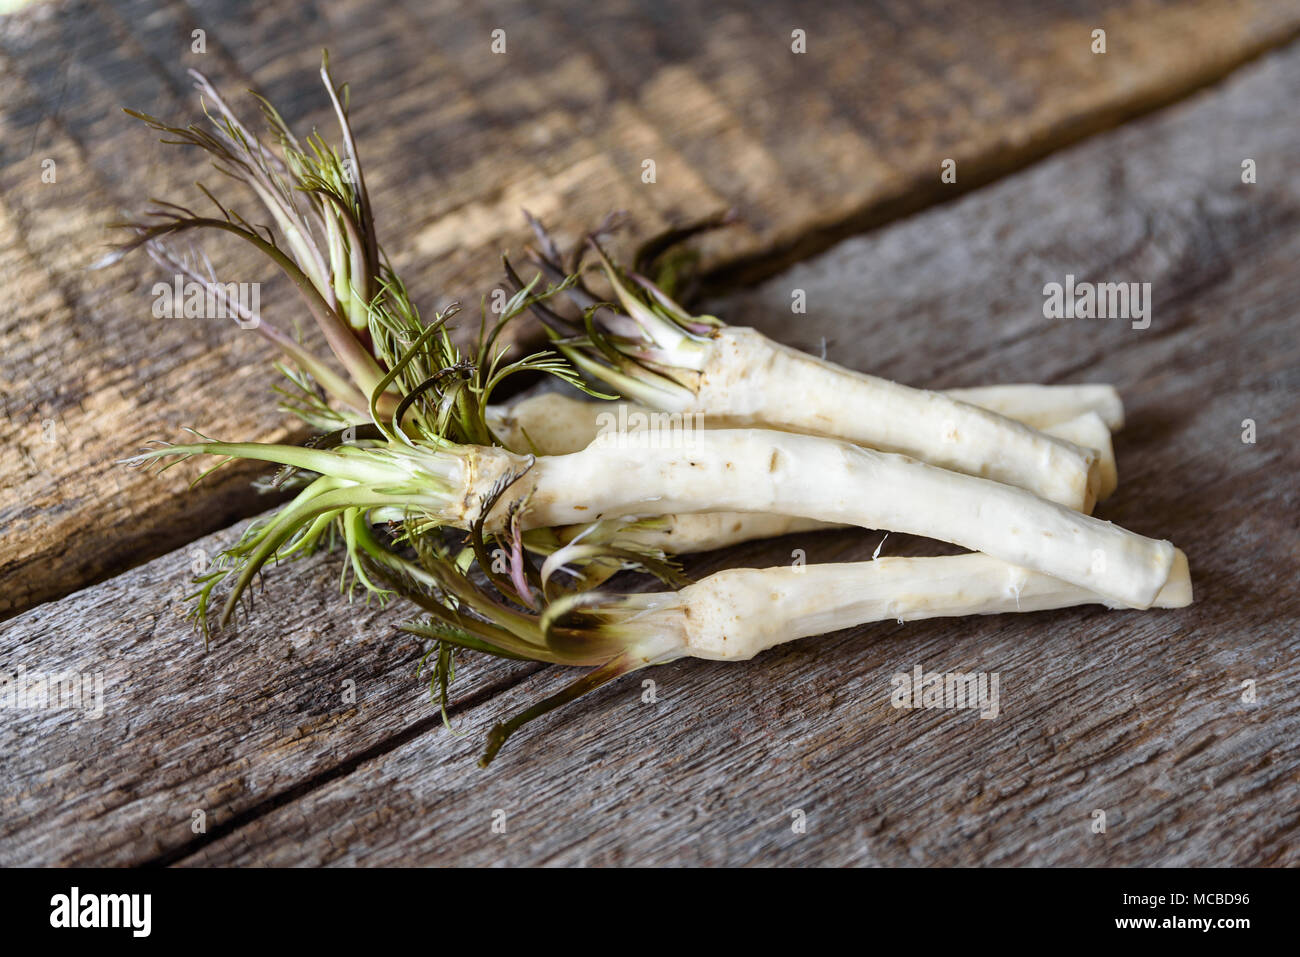 Roots of fresh peeled horseradish on a wooden surface, healthy foods and lifestyle - Stock Image